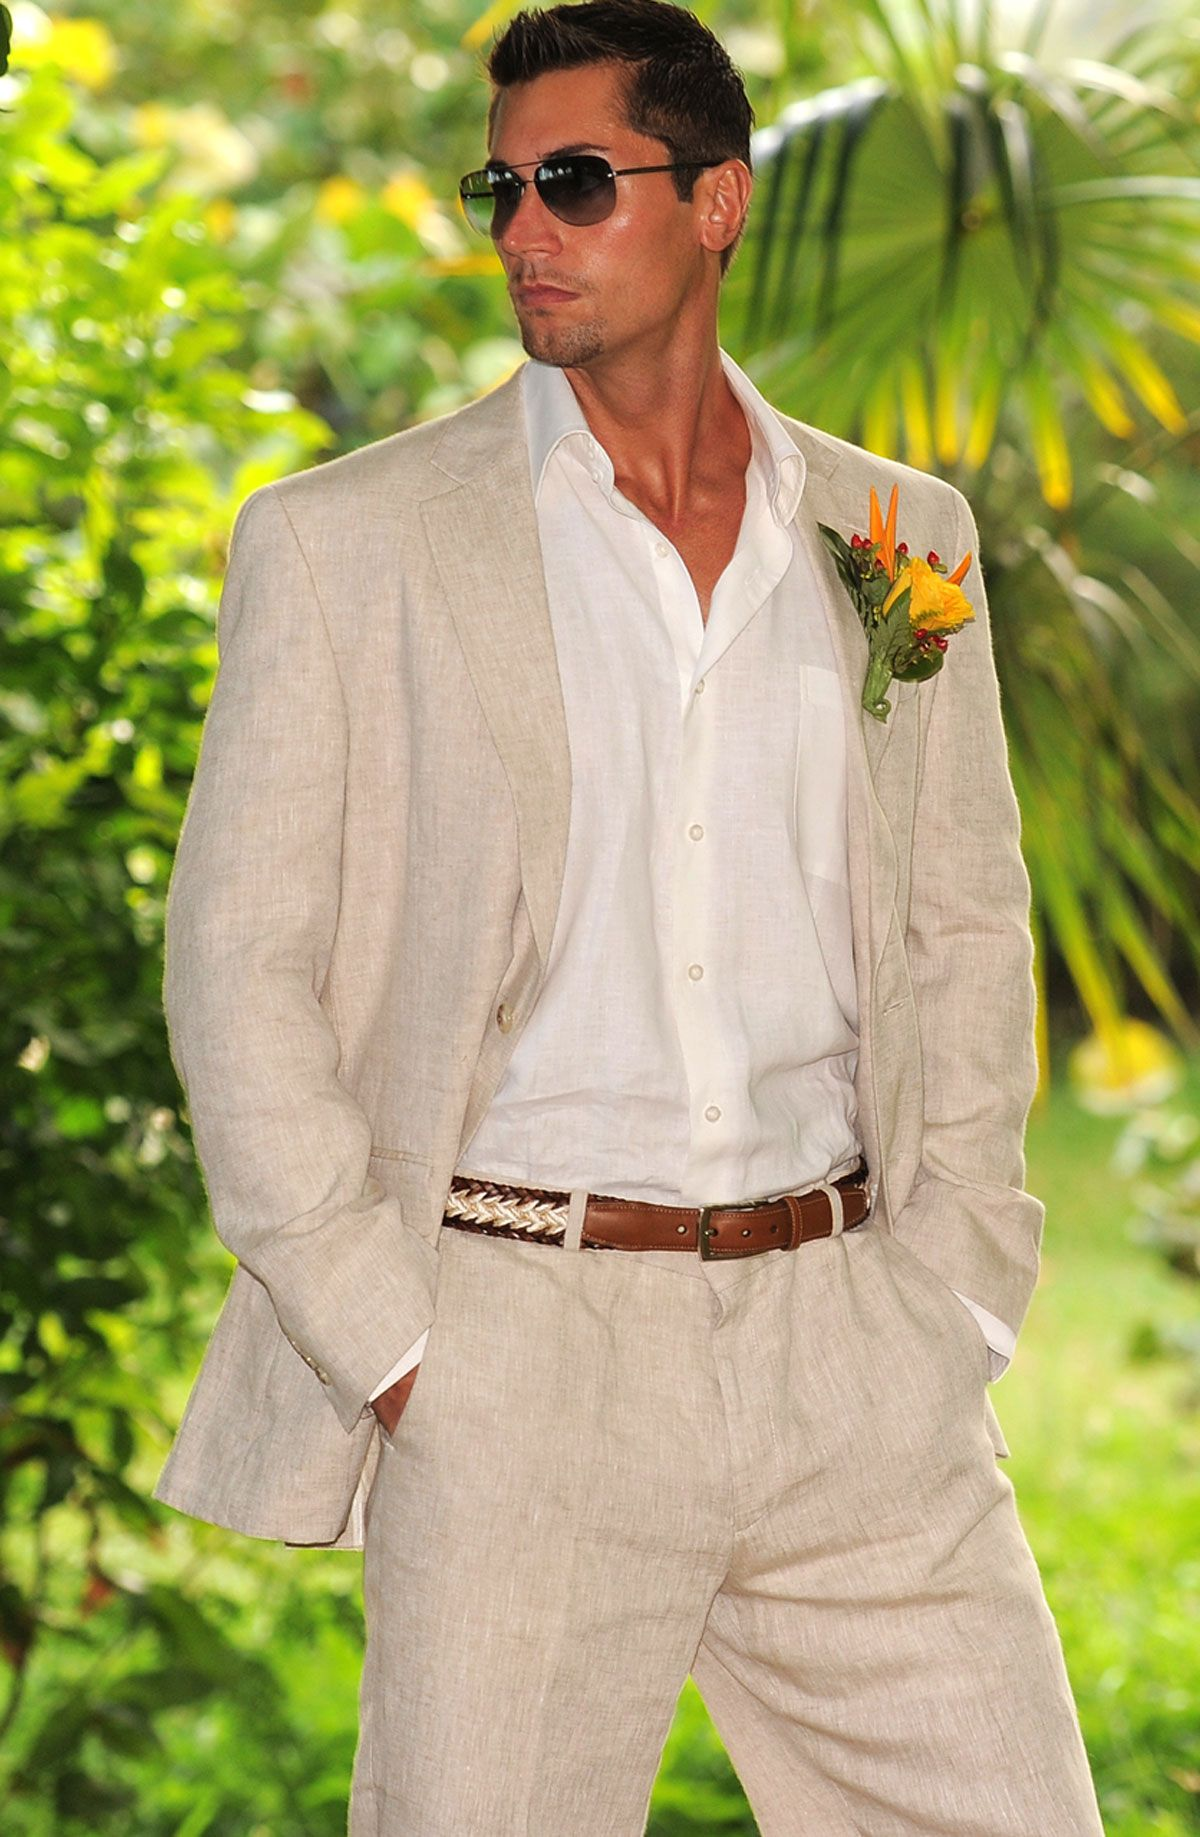 Linen Clothing - Linen Suits - Linen Shirts - Linen Pants ...